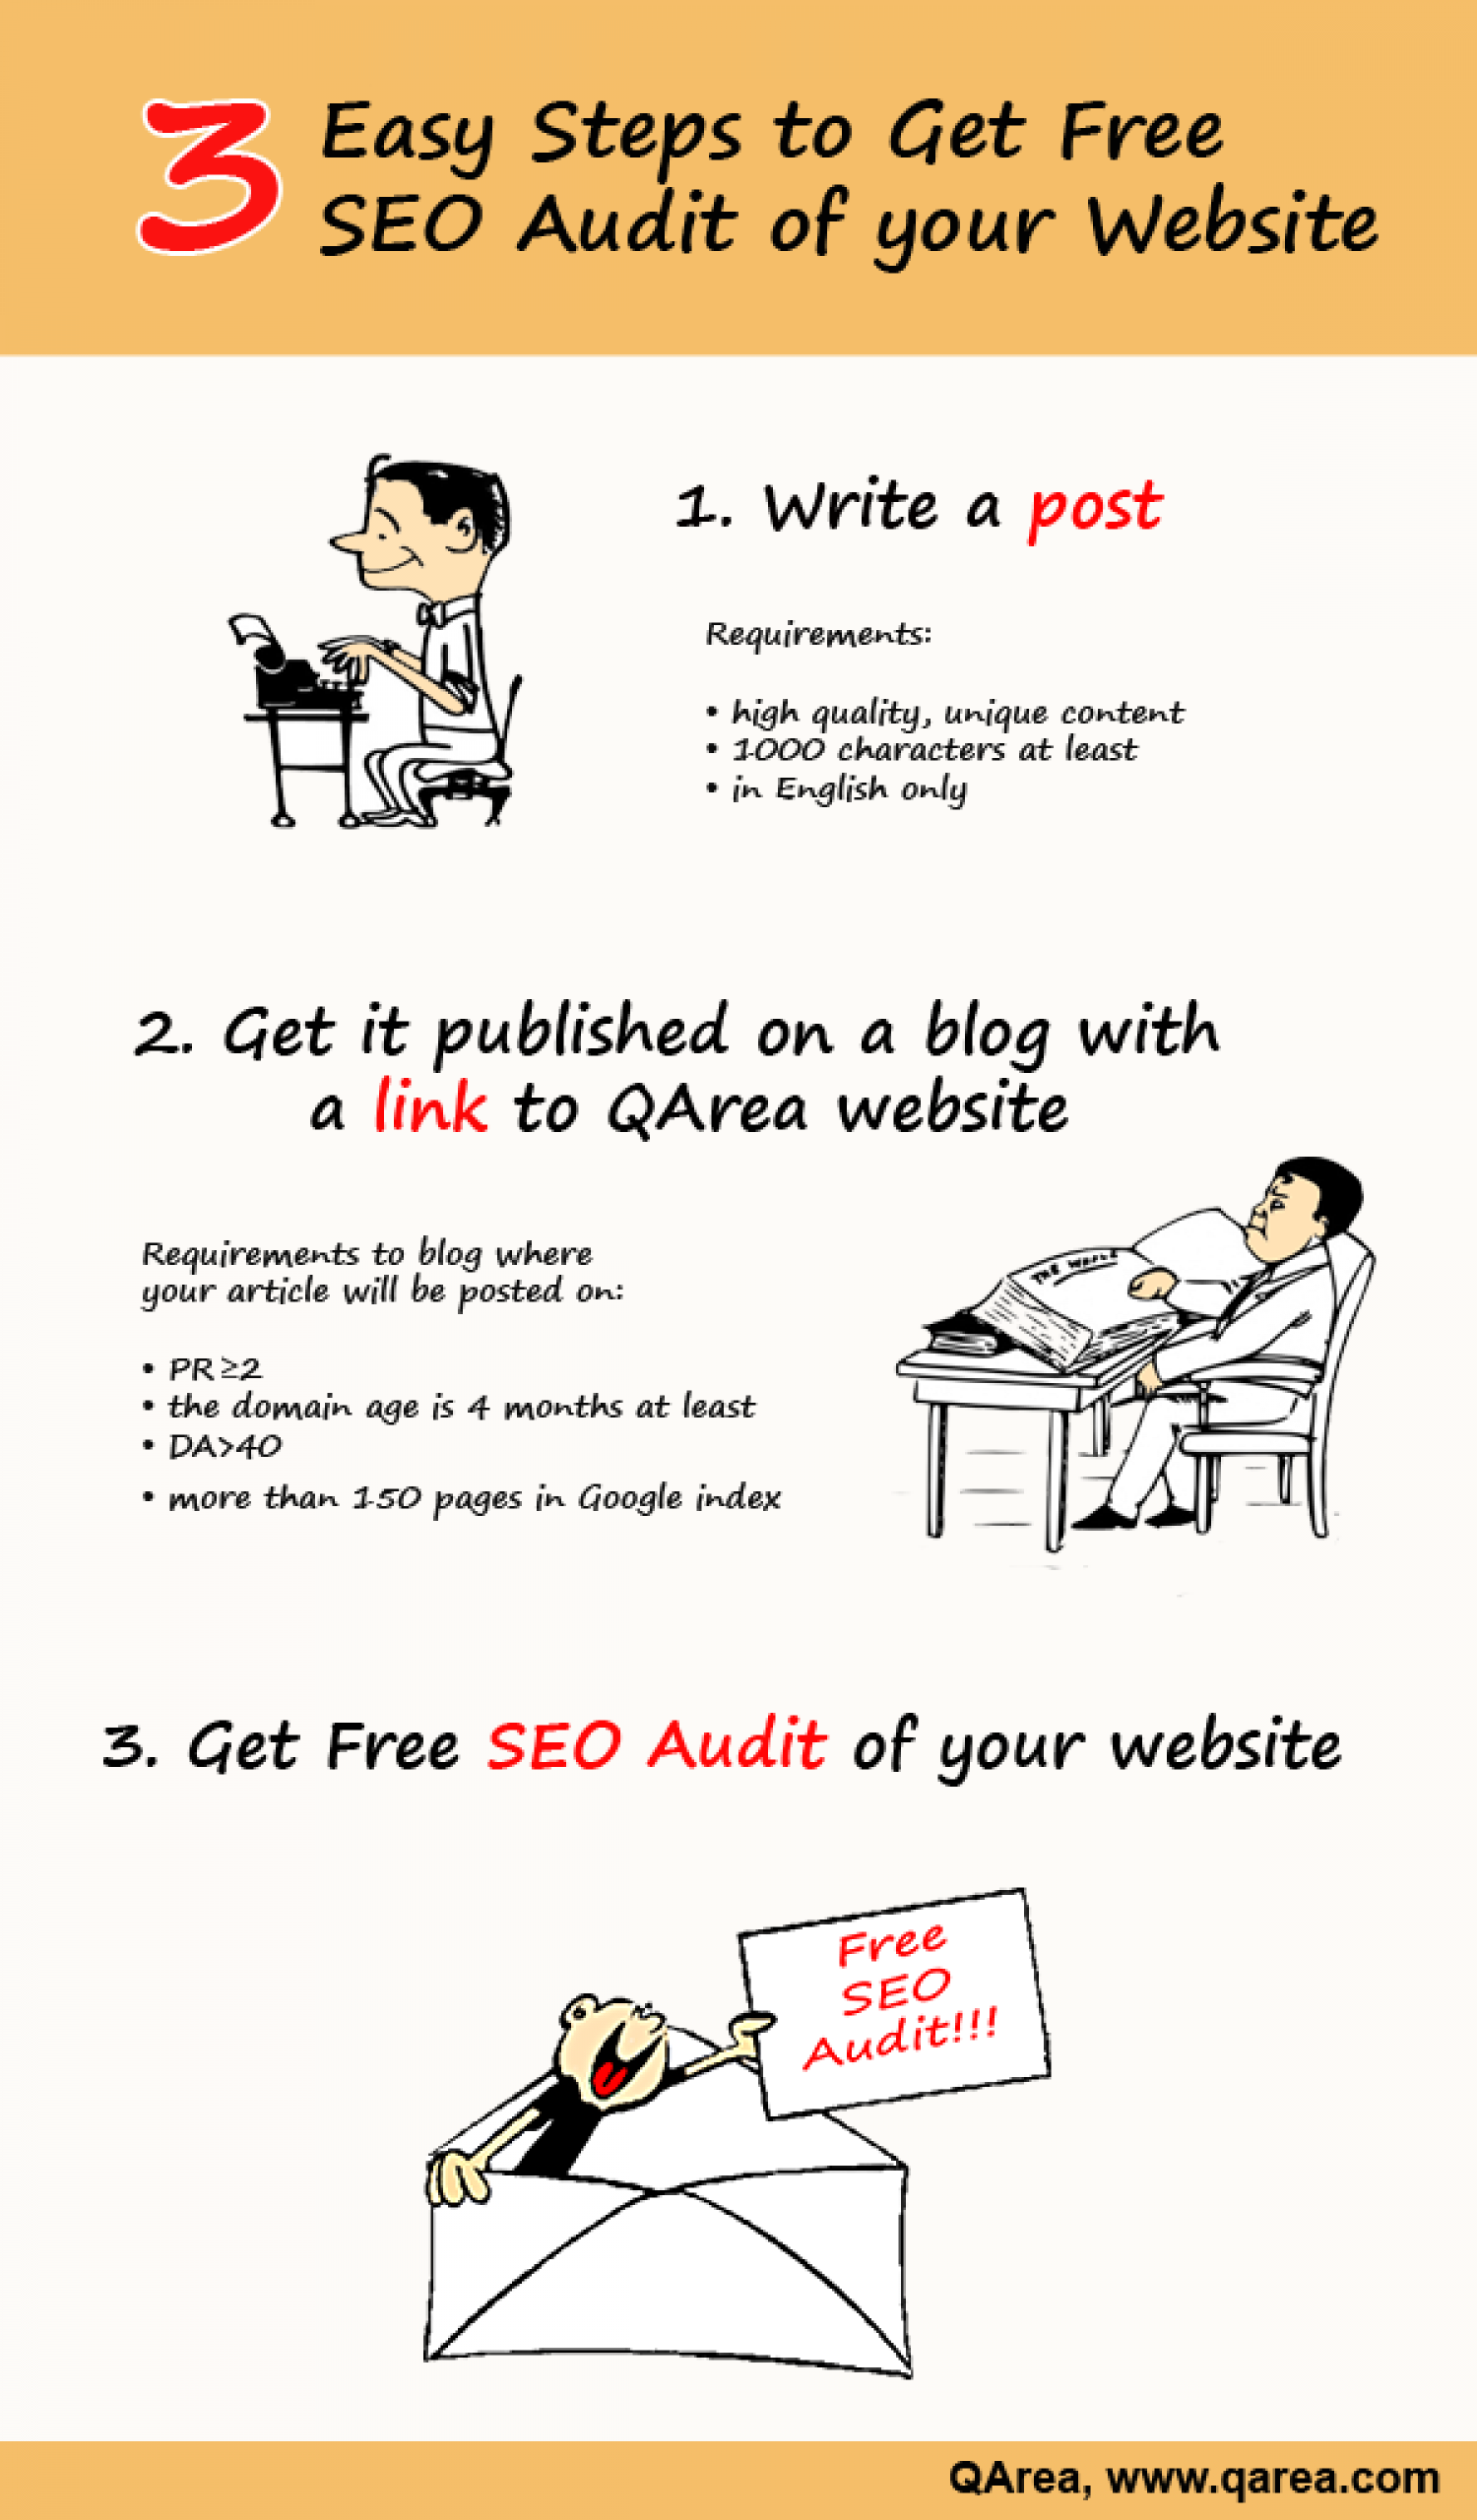 Get Free Audit of your Website from QArea SEO Experts! Infographic